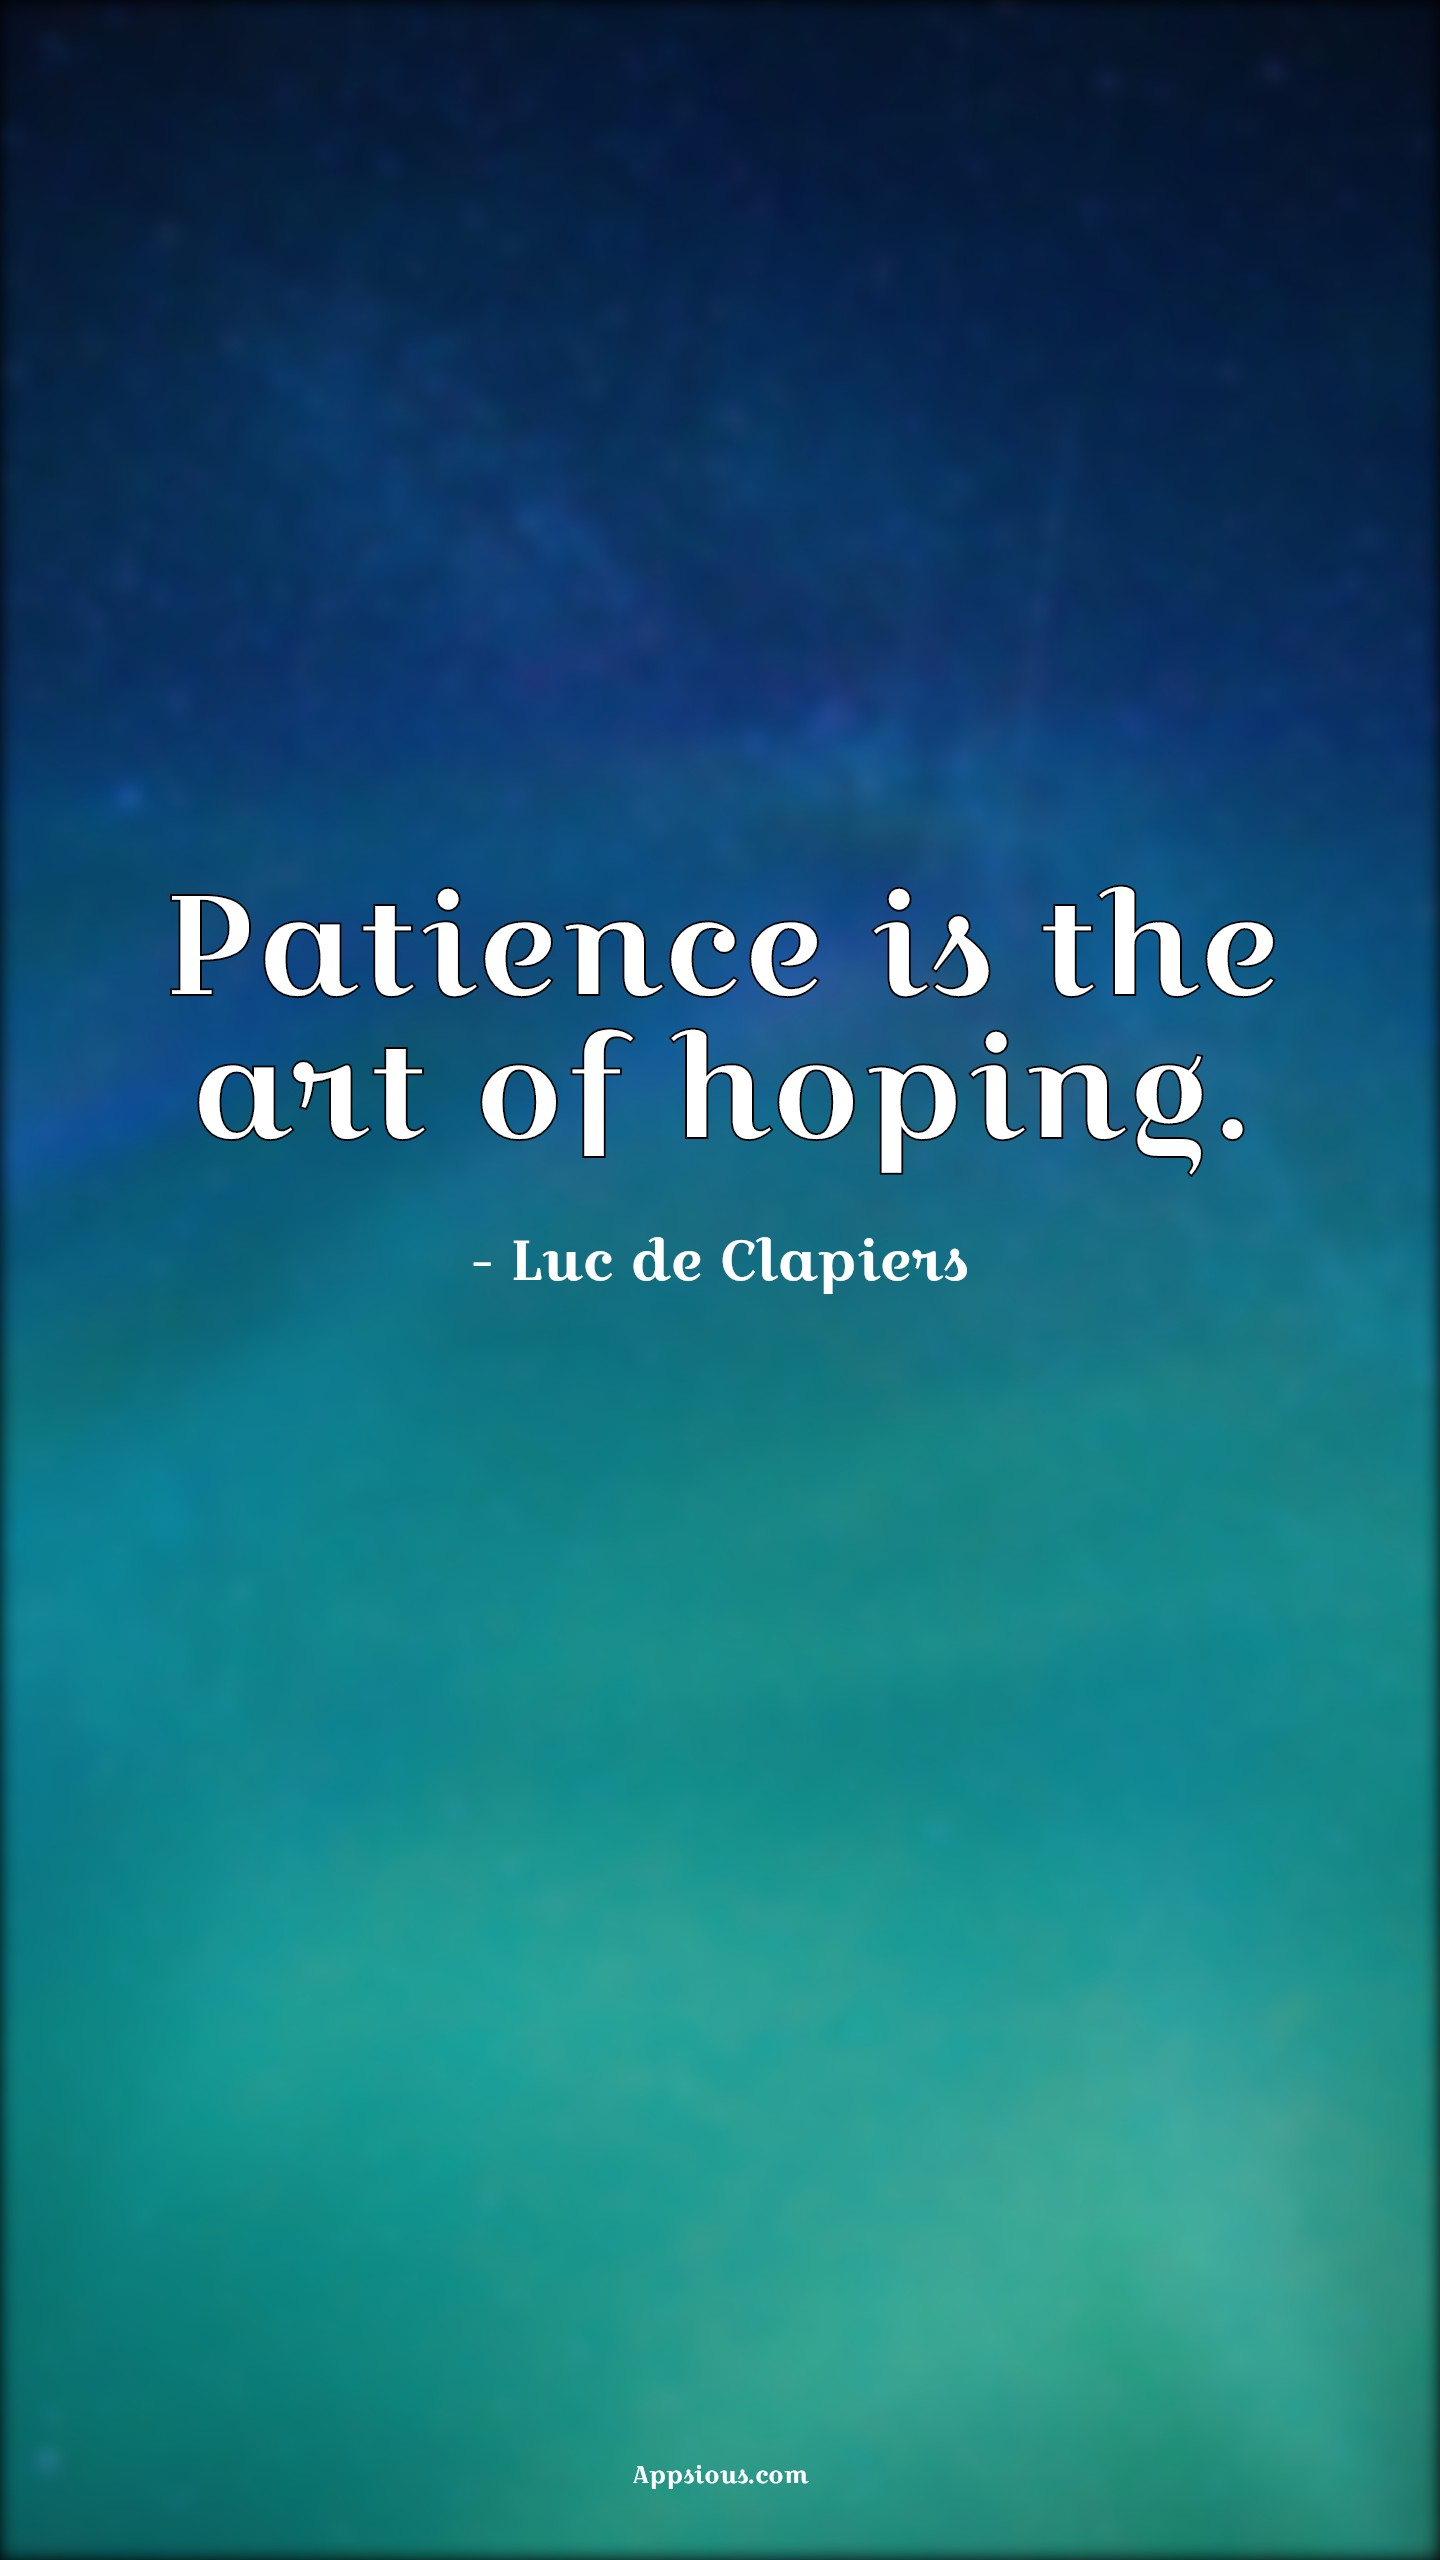 Patience is the art of hoping.